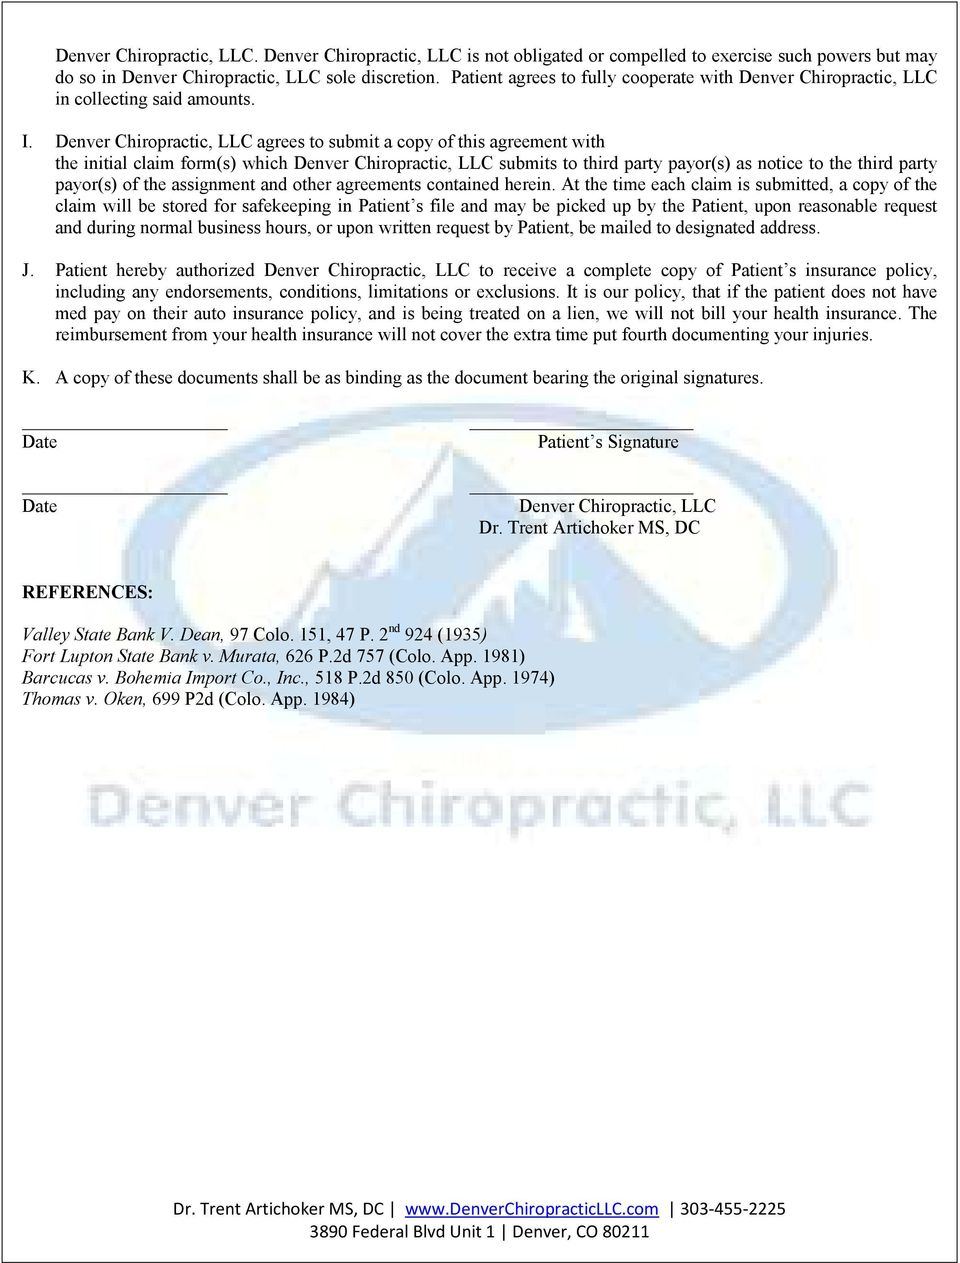 Denver Chiropractic, LLC agrees to submit a copy of this agreement with the initial claim form(s) which Denver Chiropractic, LLC submits to third party payor(s) as notice to the third party payor(s)